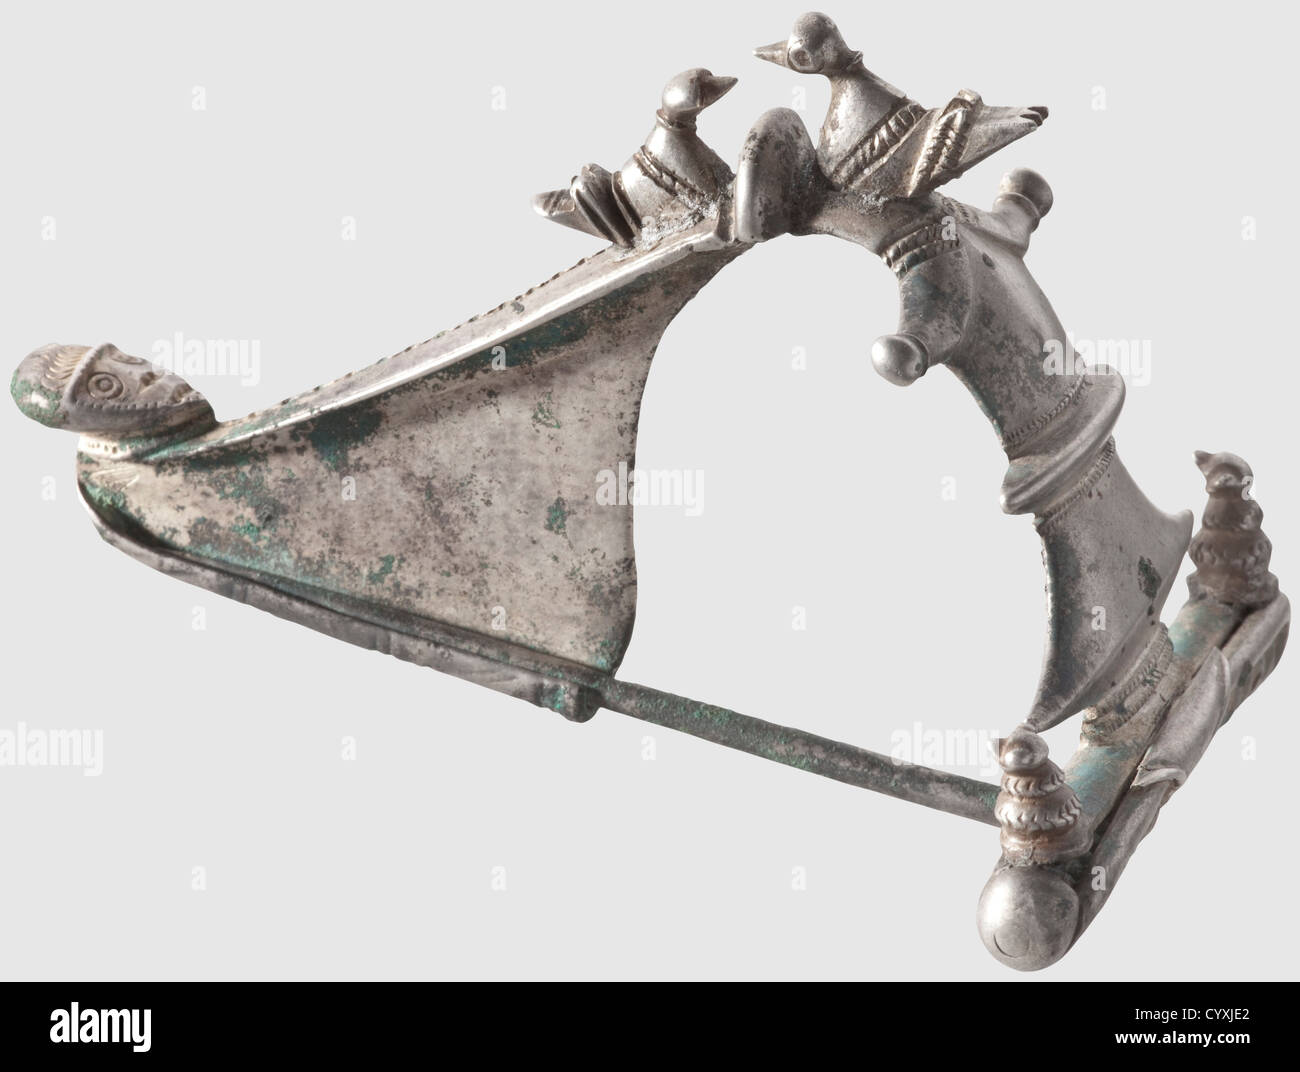 A Thracian fibula, 1st century AD. A silver, completely preserved fibula with a sculpted and figurative decorated - Stock Image